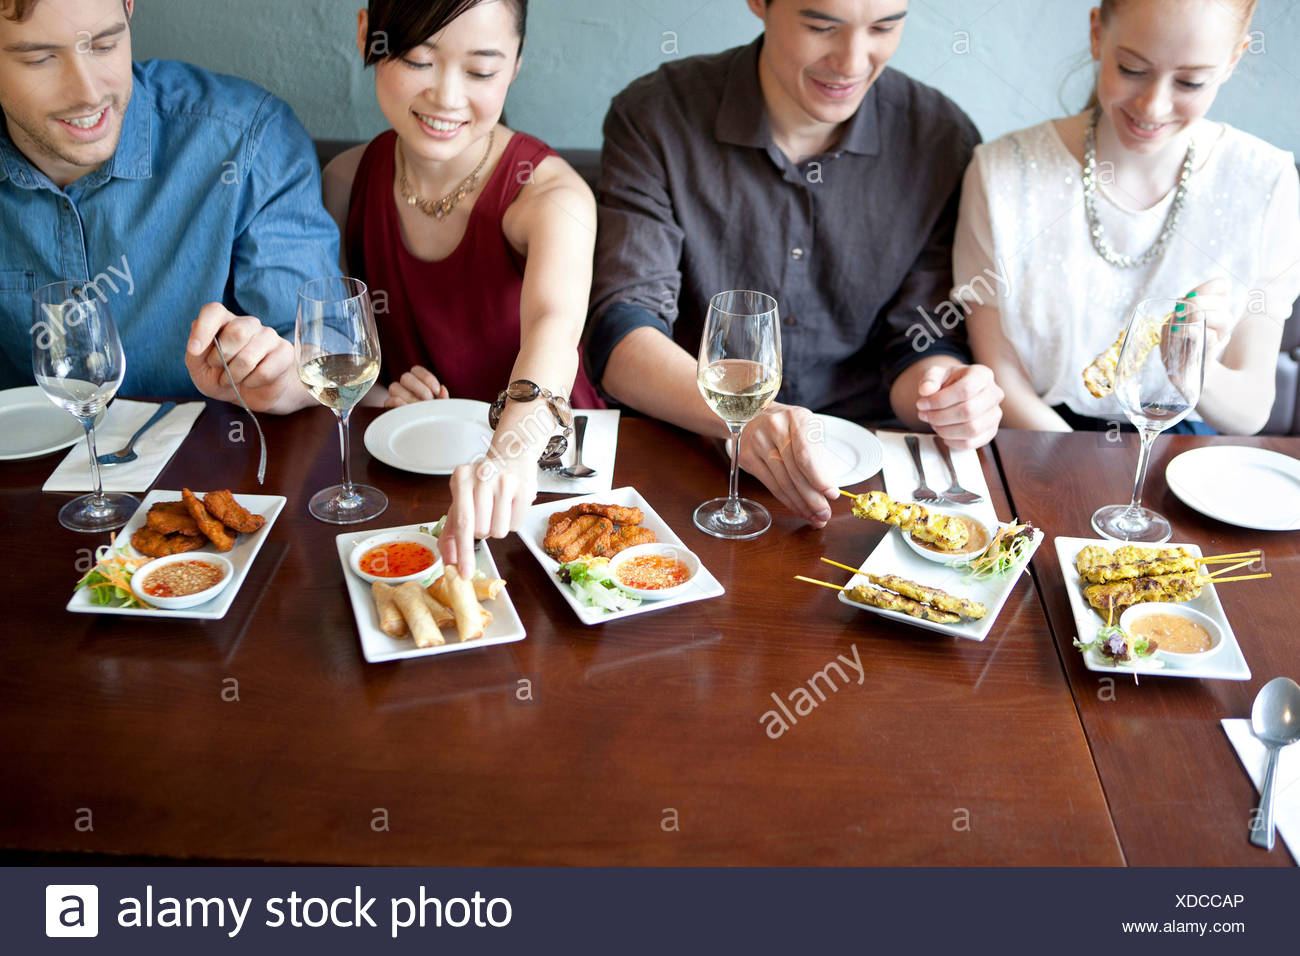 Four friends eating food in restaurant - Stock Image